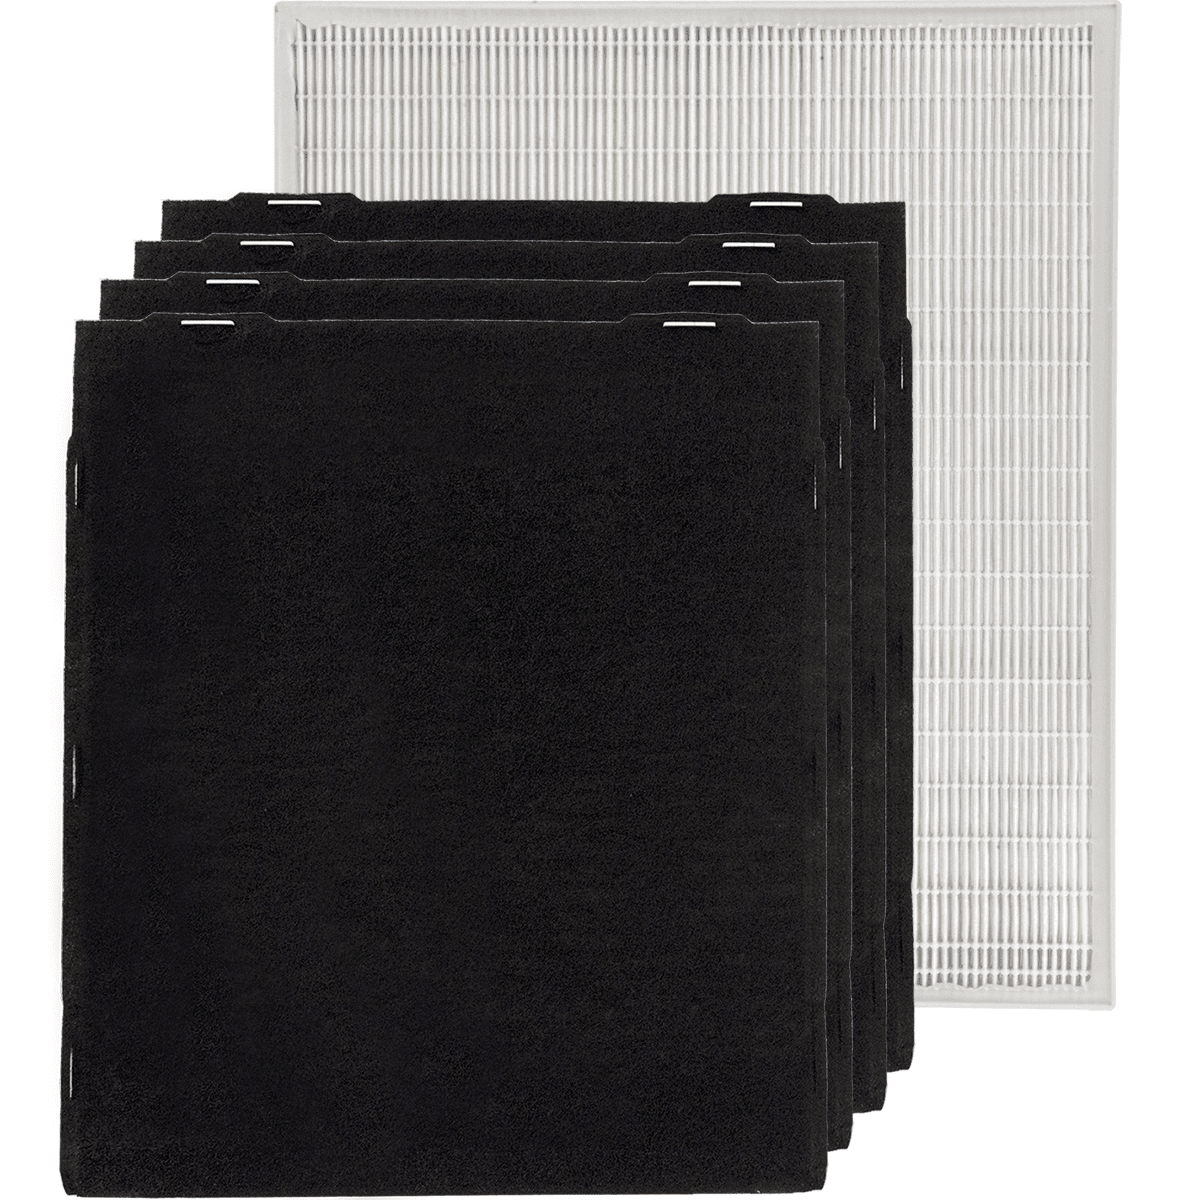 Filter-Monster Filter Kit for Whirlpool 450, 451, & 510 Air Purifiers (1 Year Supply)